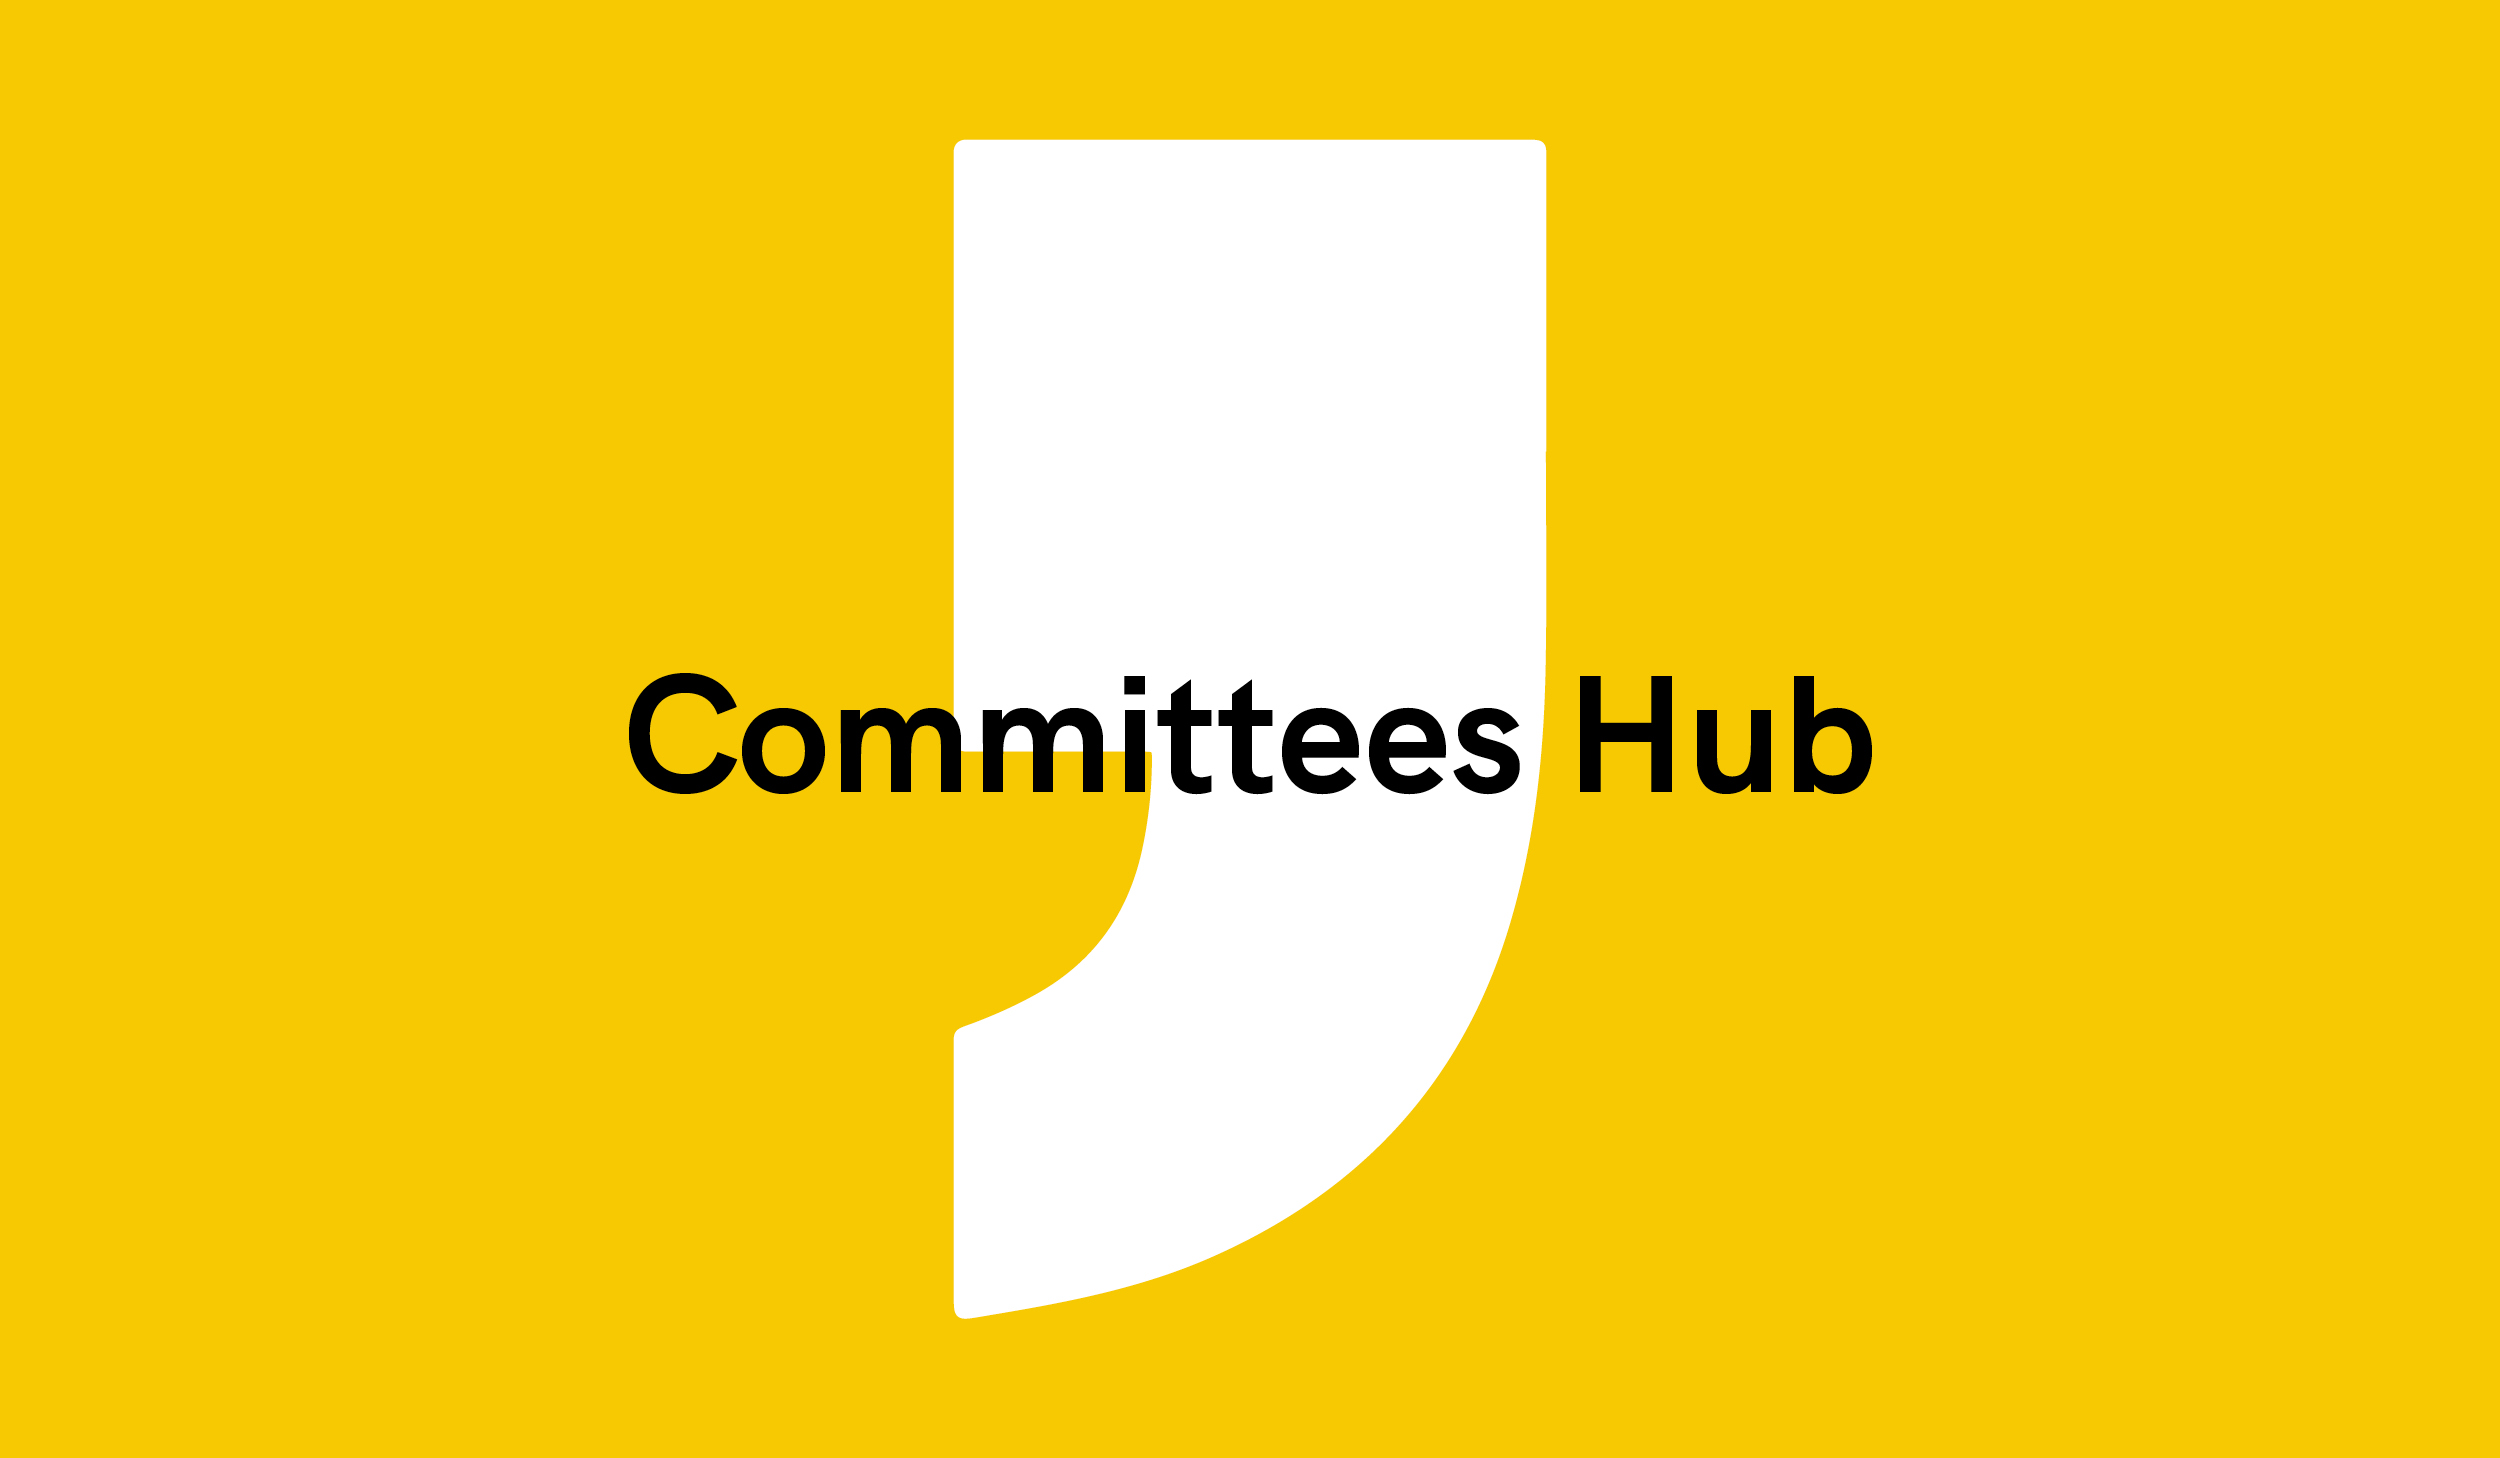 Committees Hub